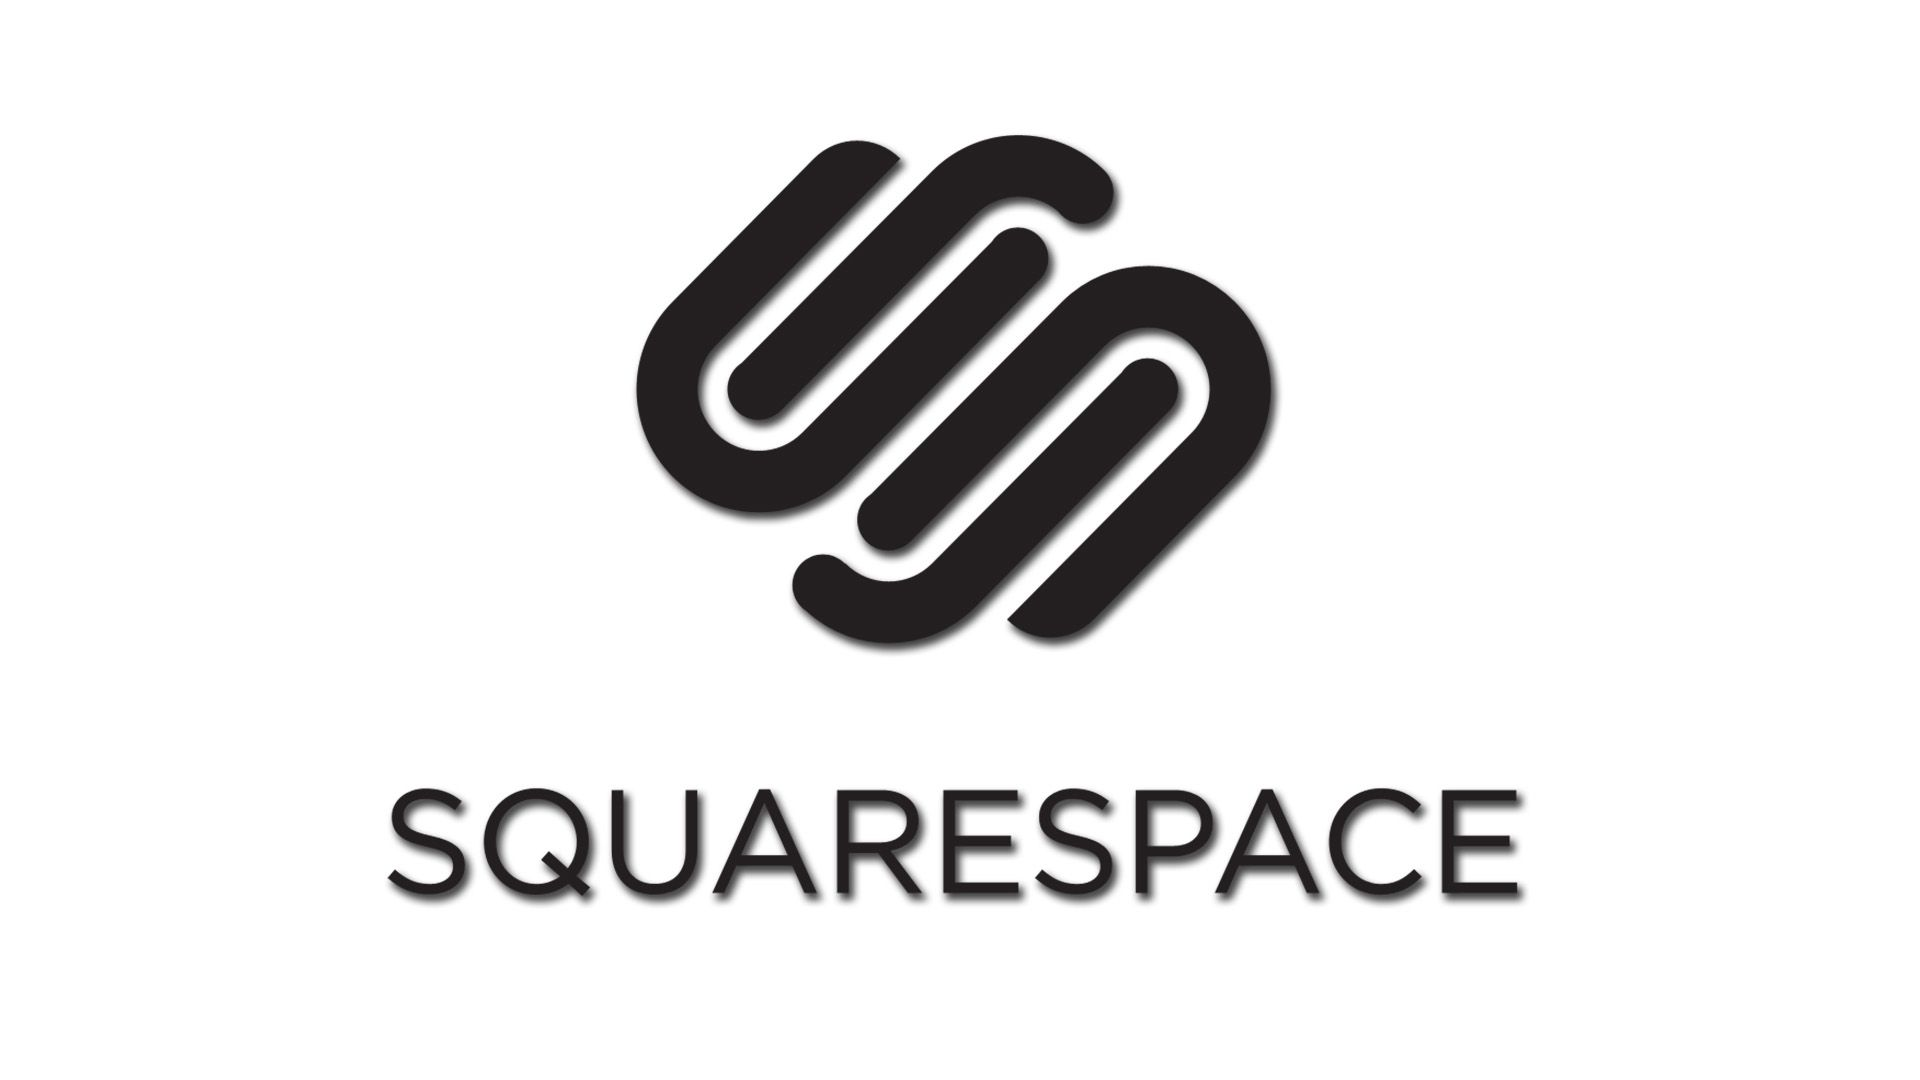 De 0 à 200 millions de dollars (Squarespace)#GrowthHacking #WEbMarketing #FormationGrowthHacking #CentreDeFormationFrance #TunnelAARRR #AARRR #SocialMedia #CommunityManagement #SEO #SquareSpace #revenu